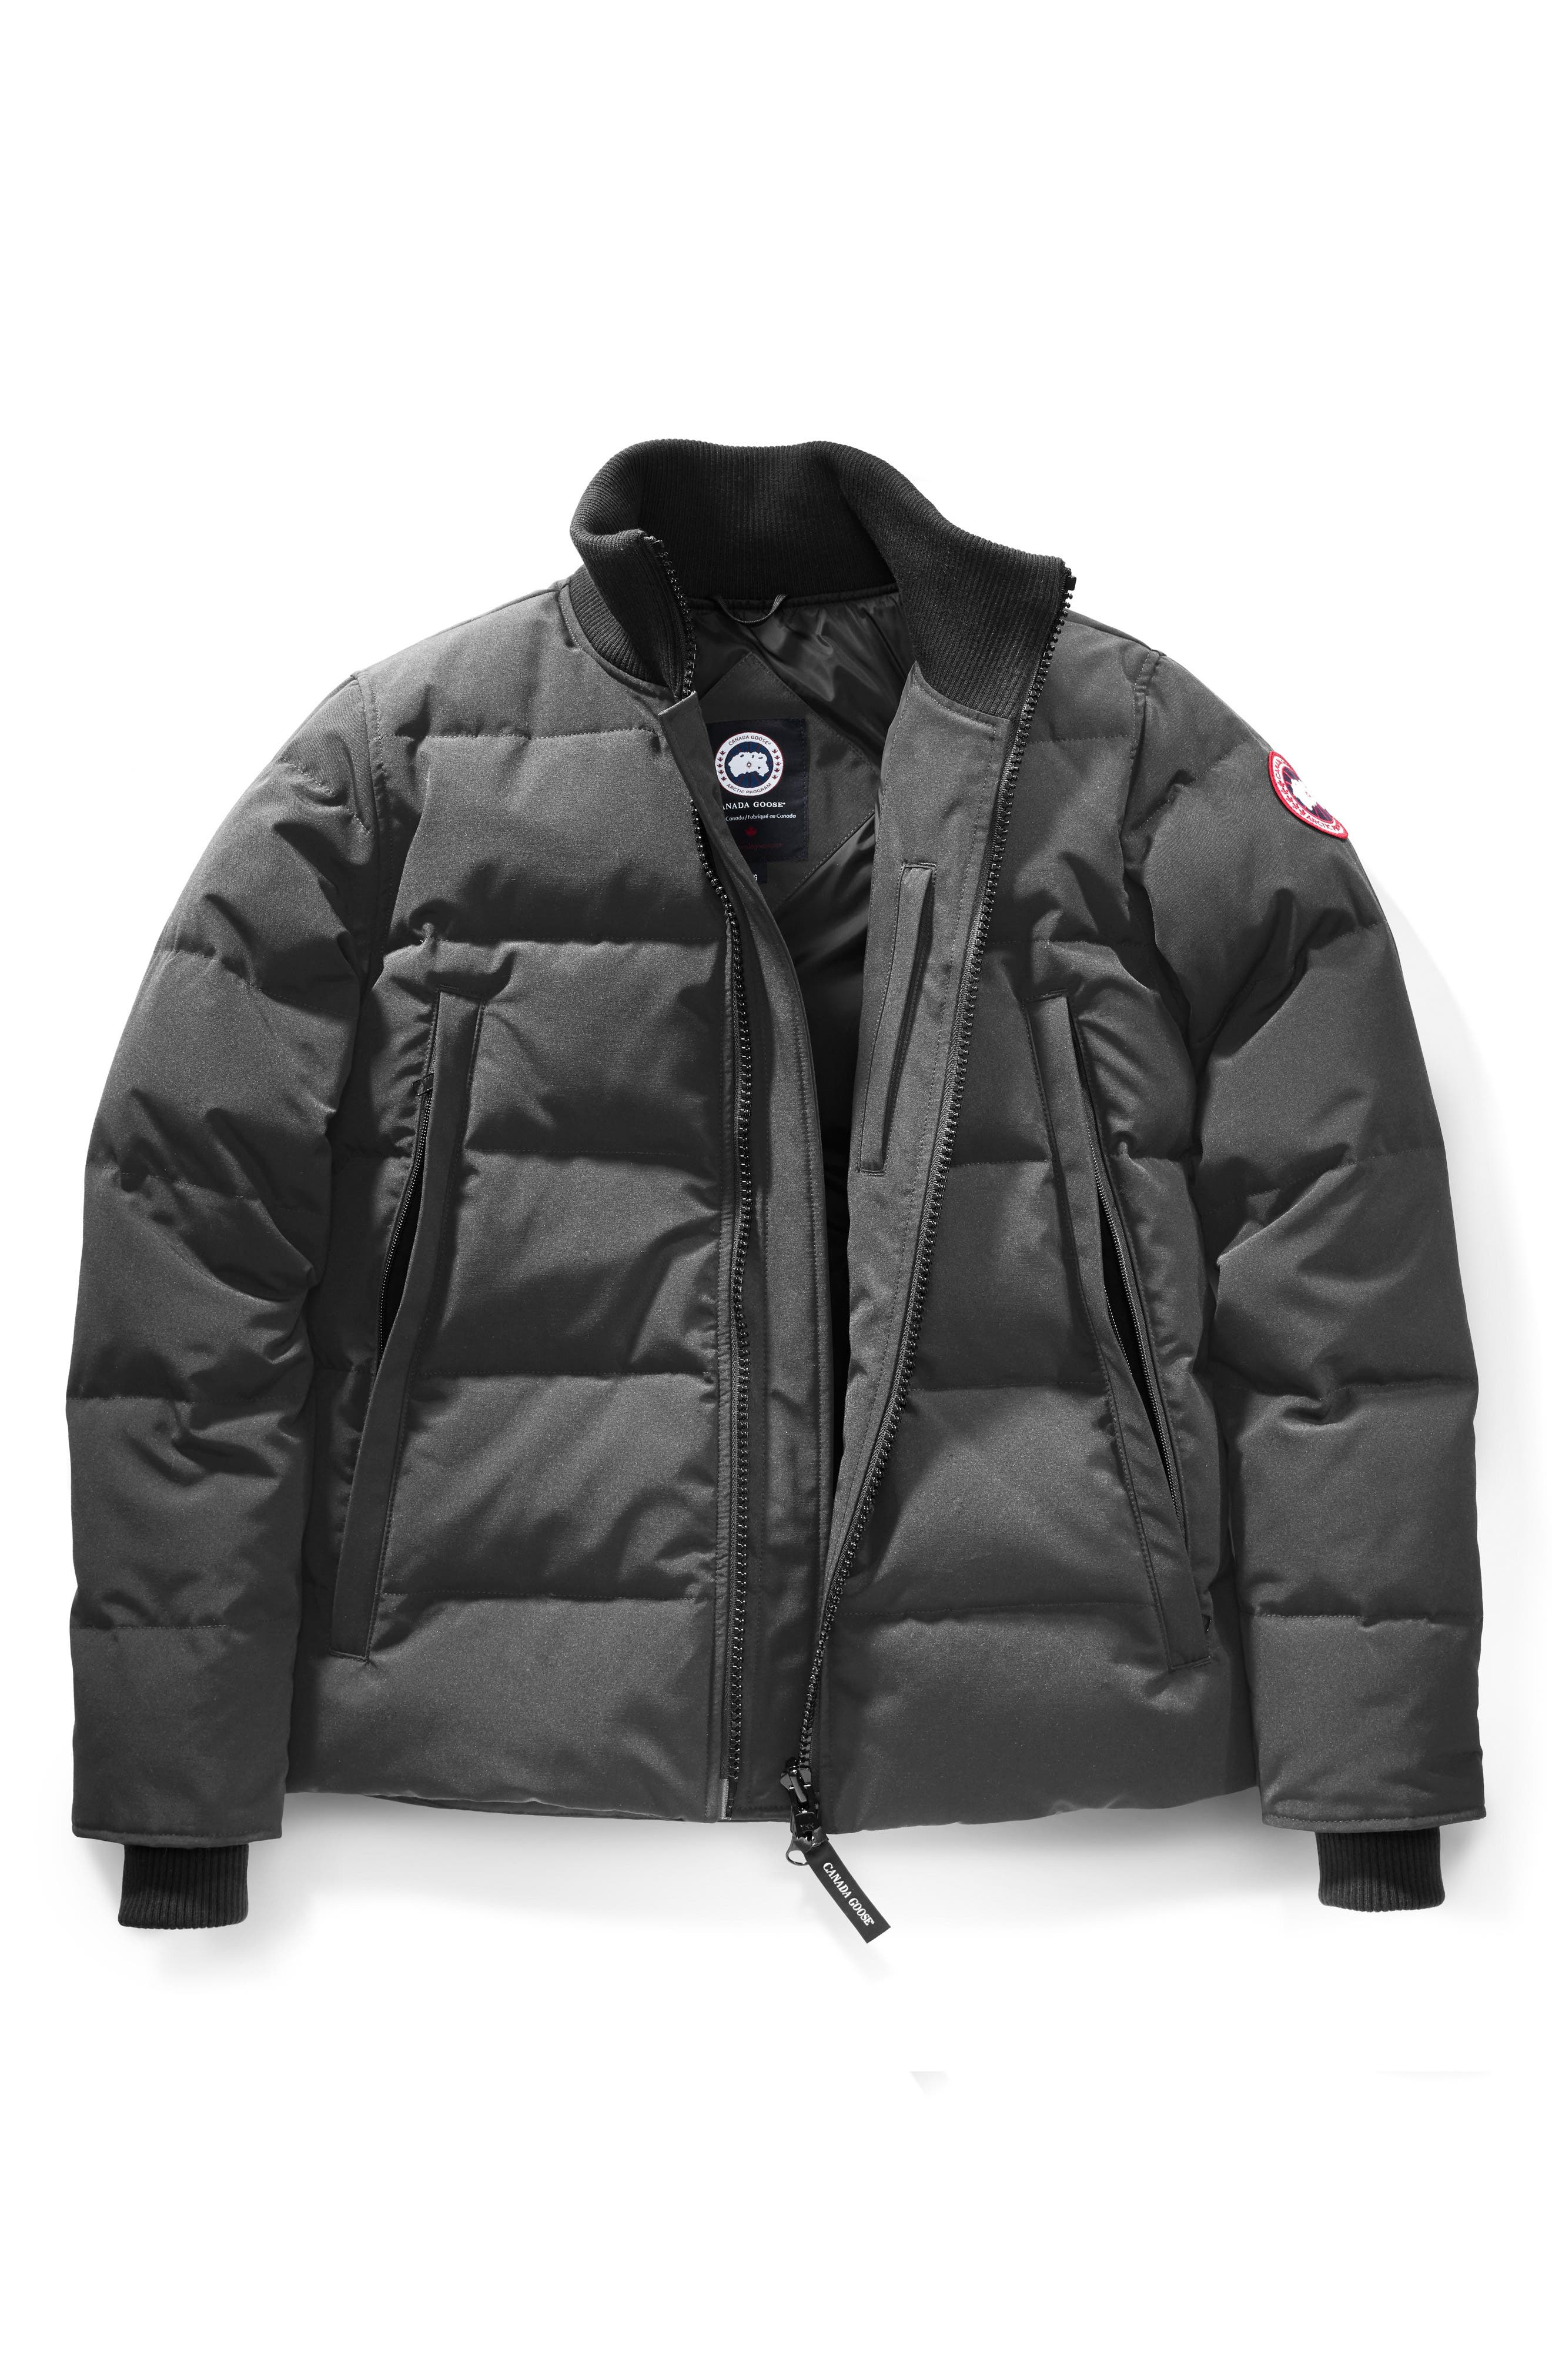 CANADA GOOSE, 'Woolford' Slim Fit Down Bomber Jacket, Alternate thumbnail 6, color, GRAPHITE